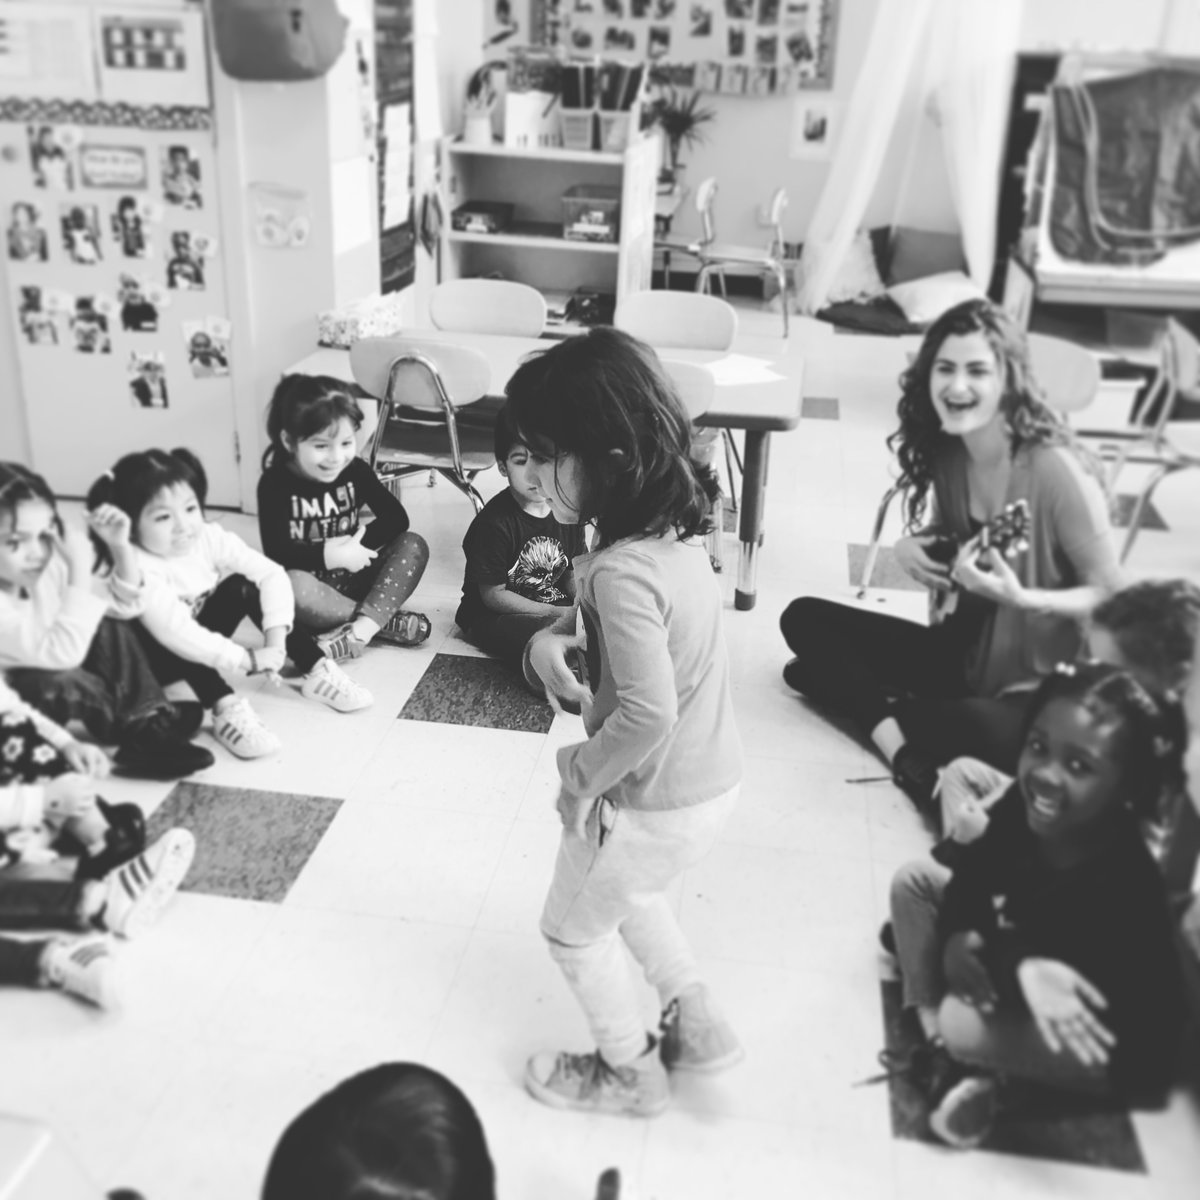 Laura Volpacchio plays ukulele while teaching a dance class as preschooler dances alone surrounded by her peers